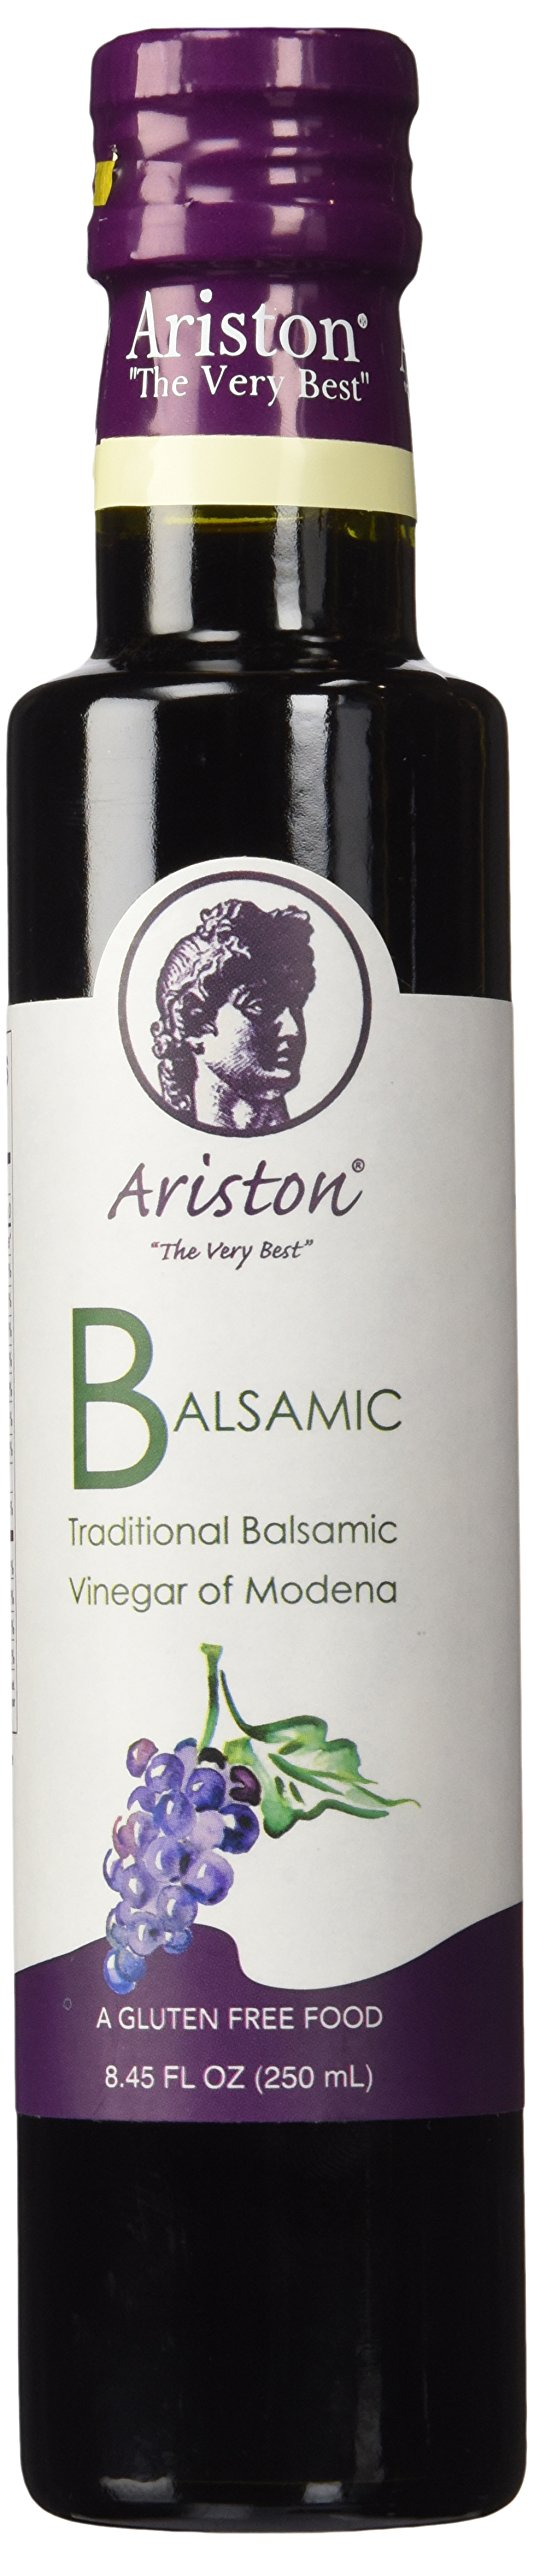 Ariston Traditional Modena Balsamic Premium Vinegar Aged 250ml Product of Italy Sweet Taste